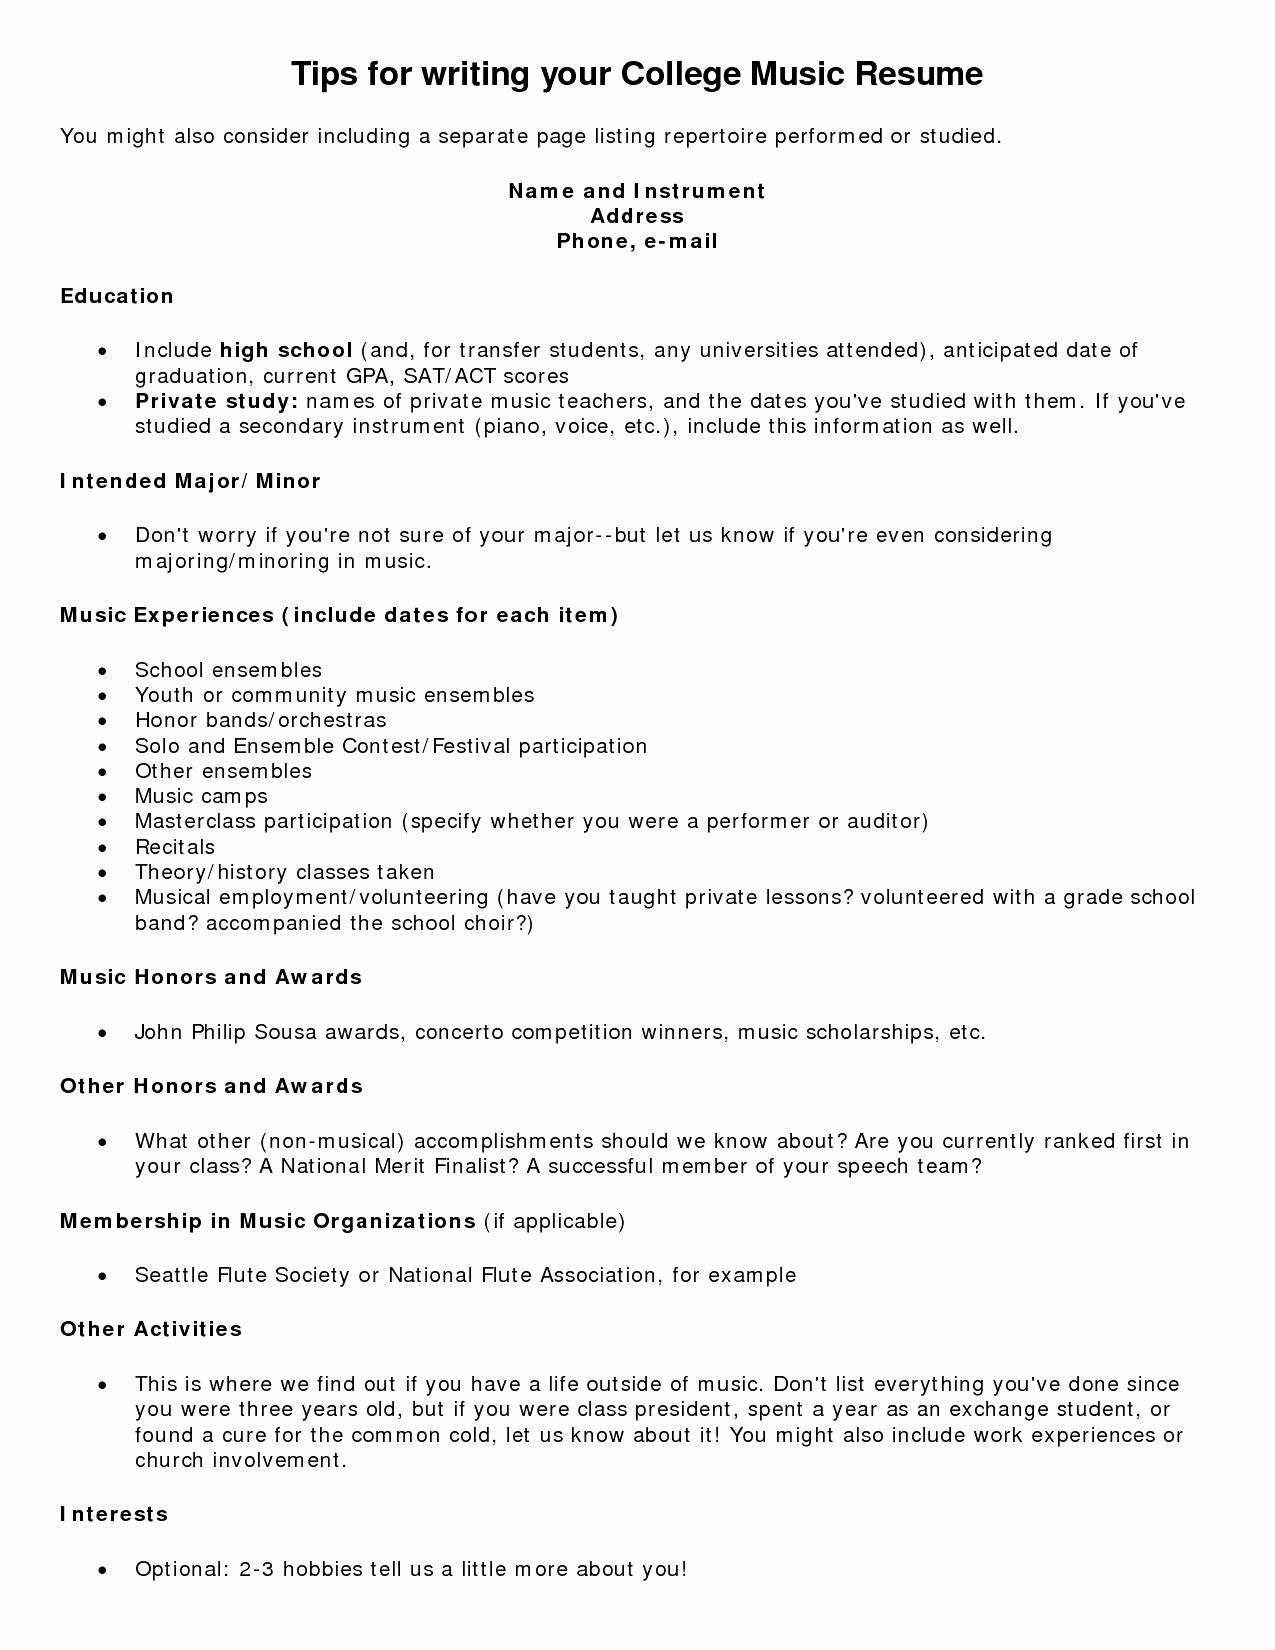 Resume Education Transfer Student - Tagalog Resume format Inspirational Resume Letter Intent Unique